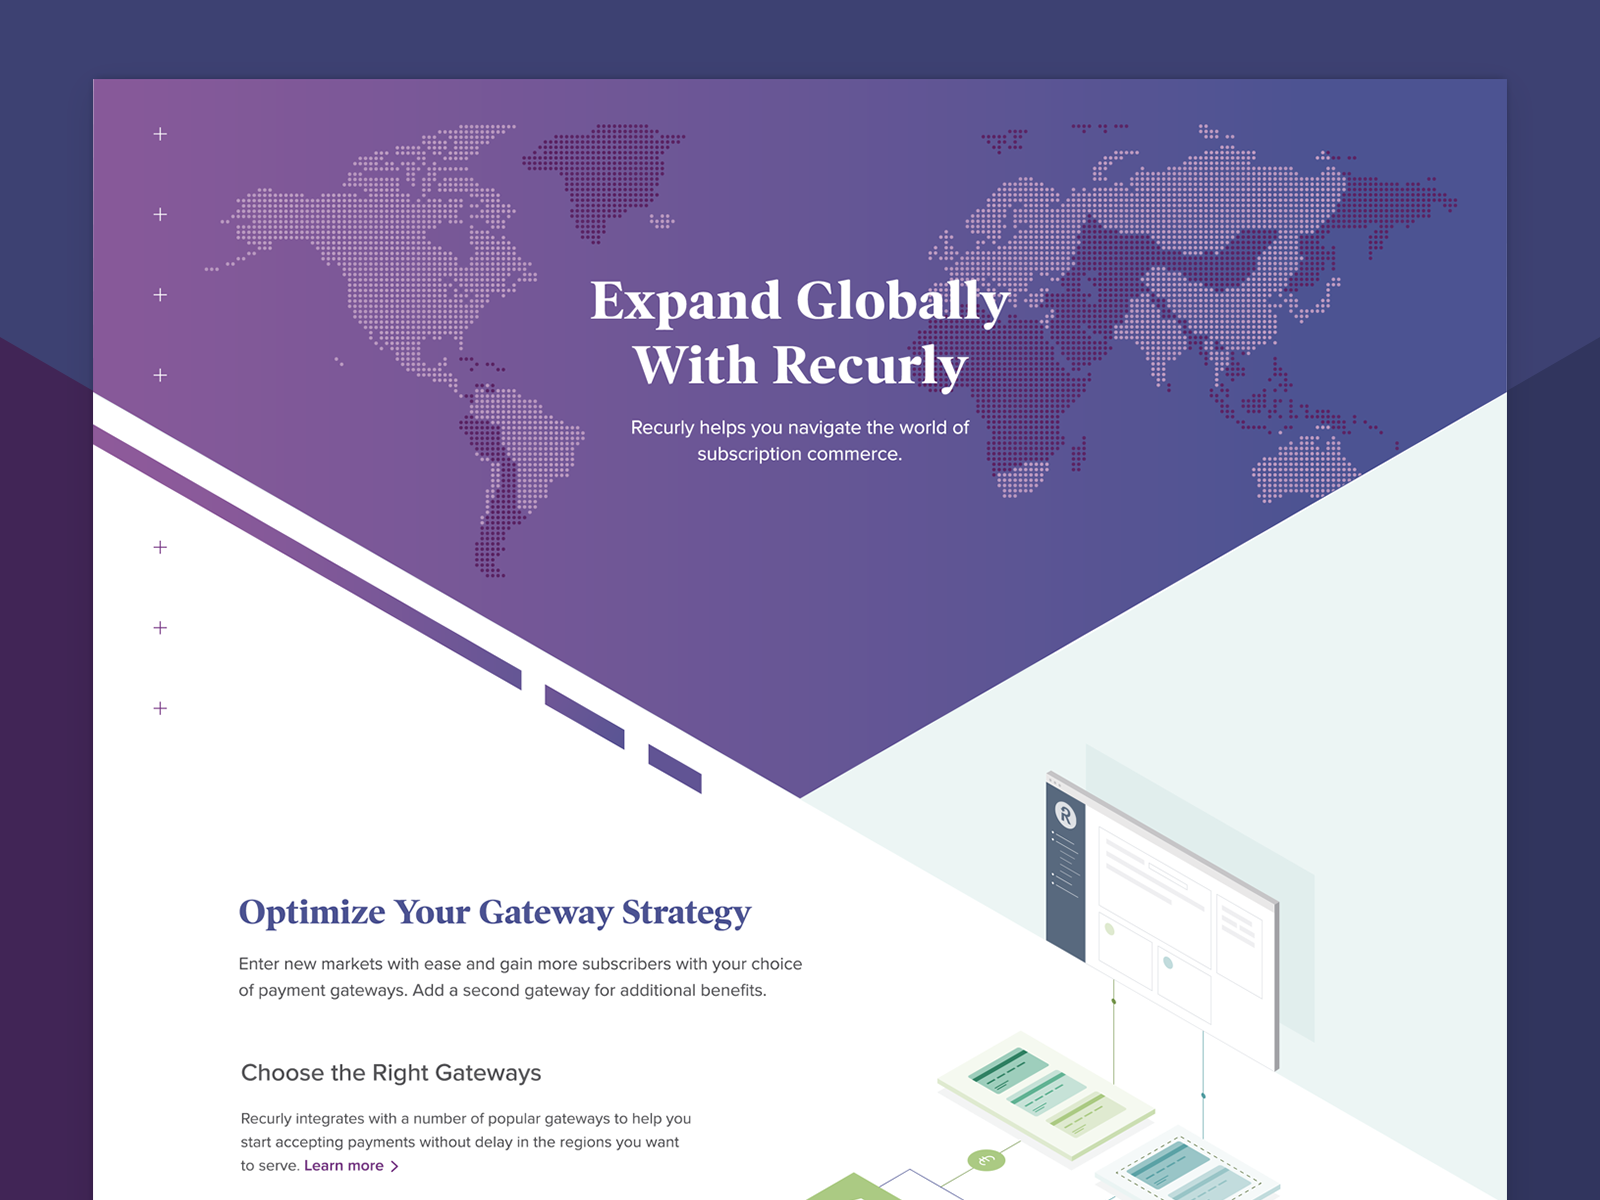 Expand globally 2x